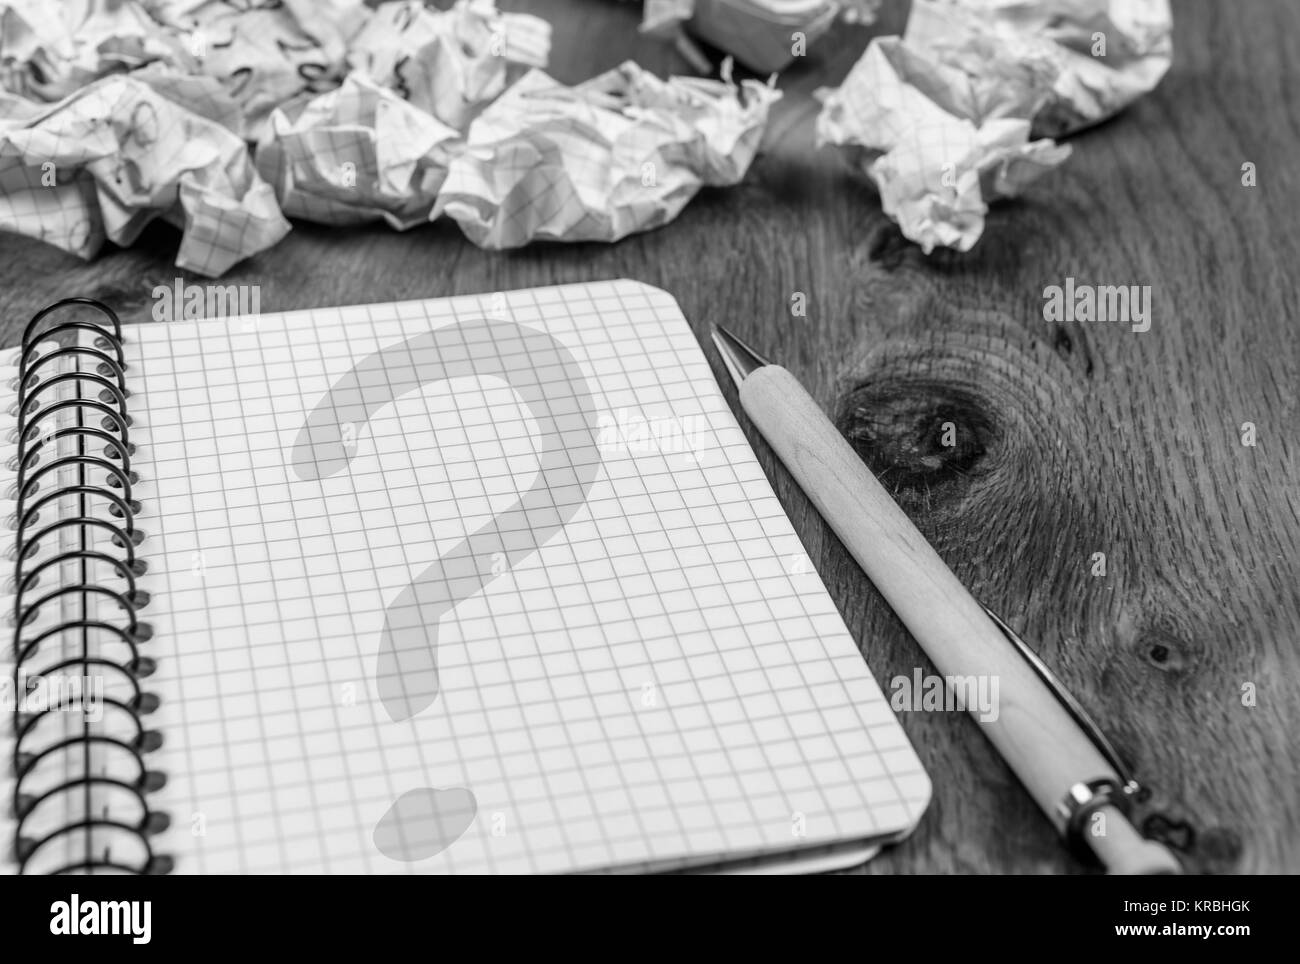 Question mark on notebook page - Stock Image